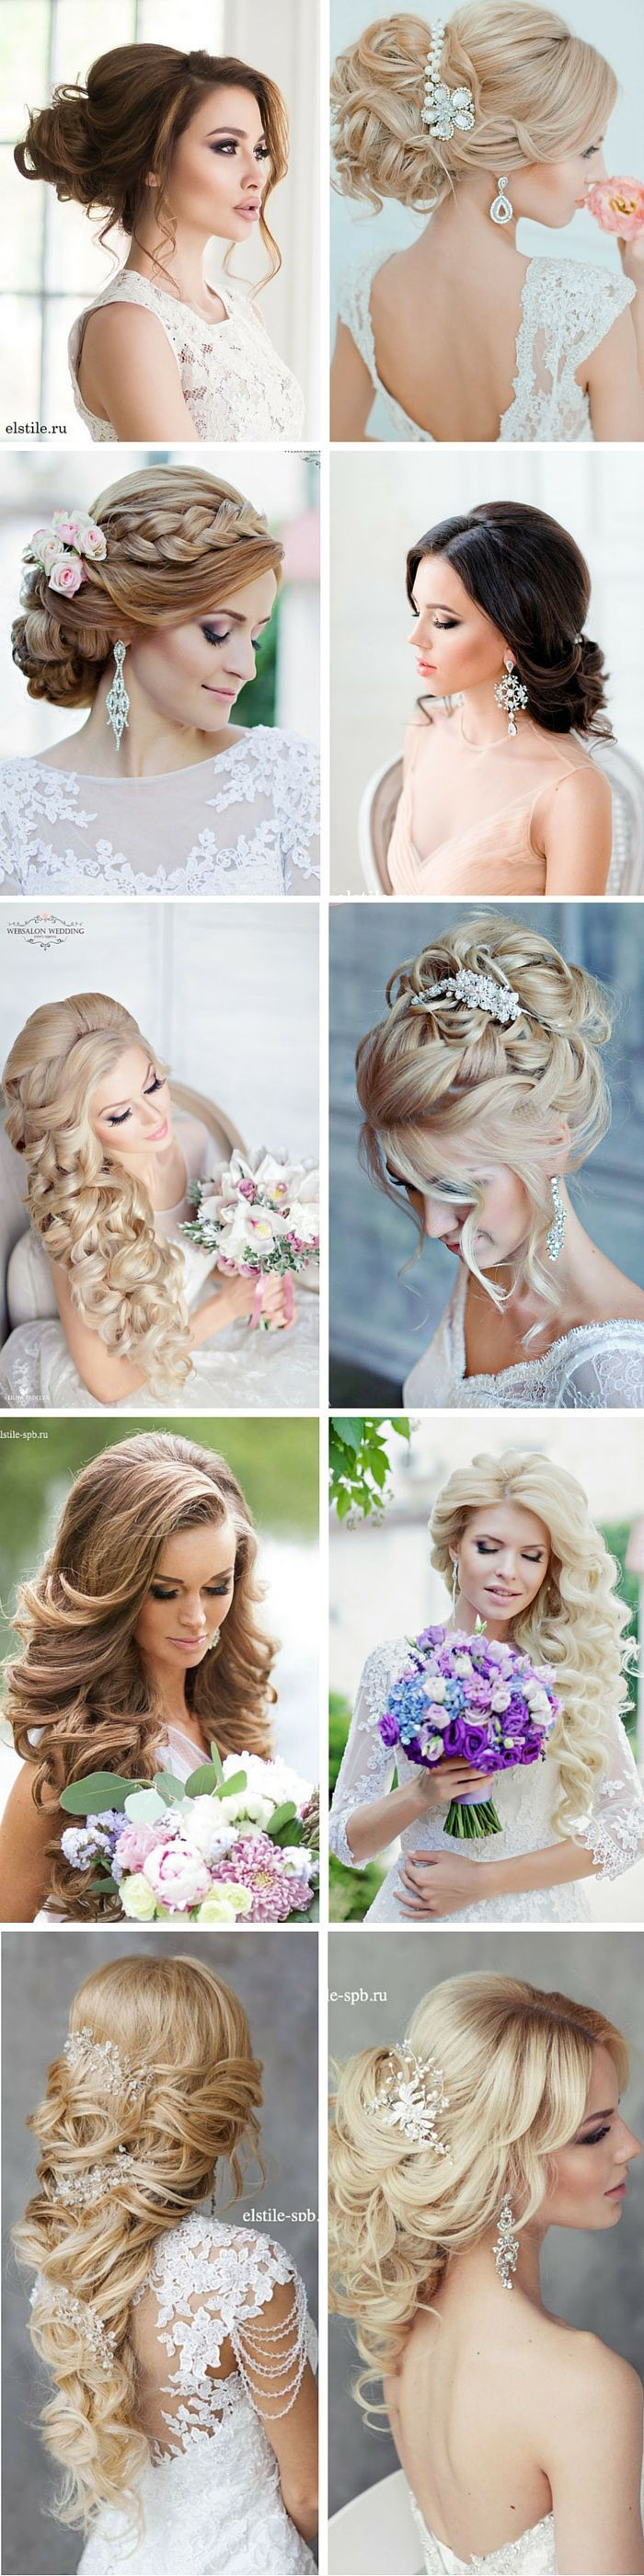 2436 best Wedding Hairstyles images on Pinterest